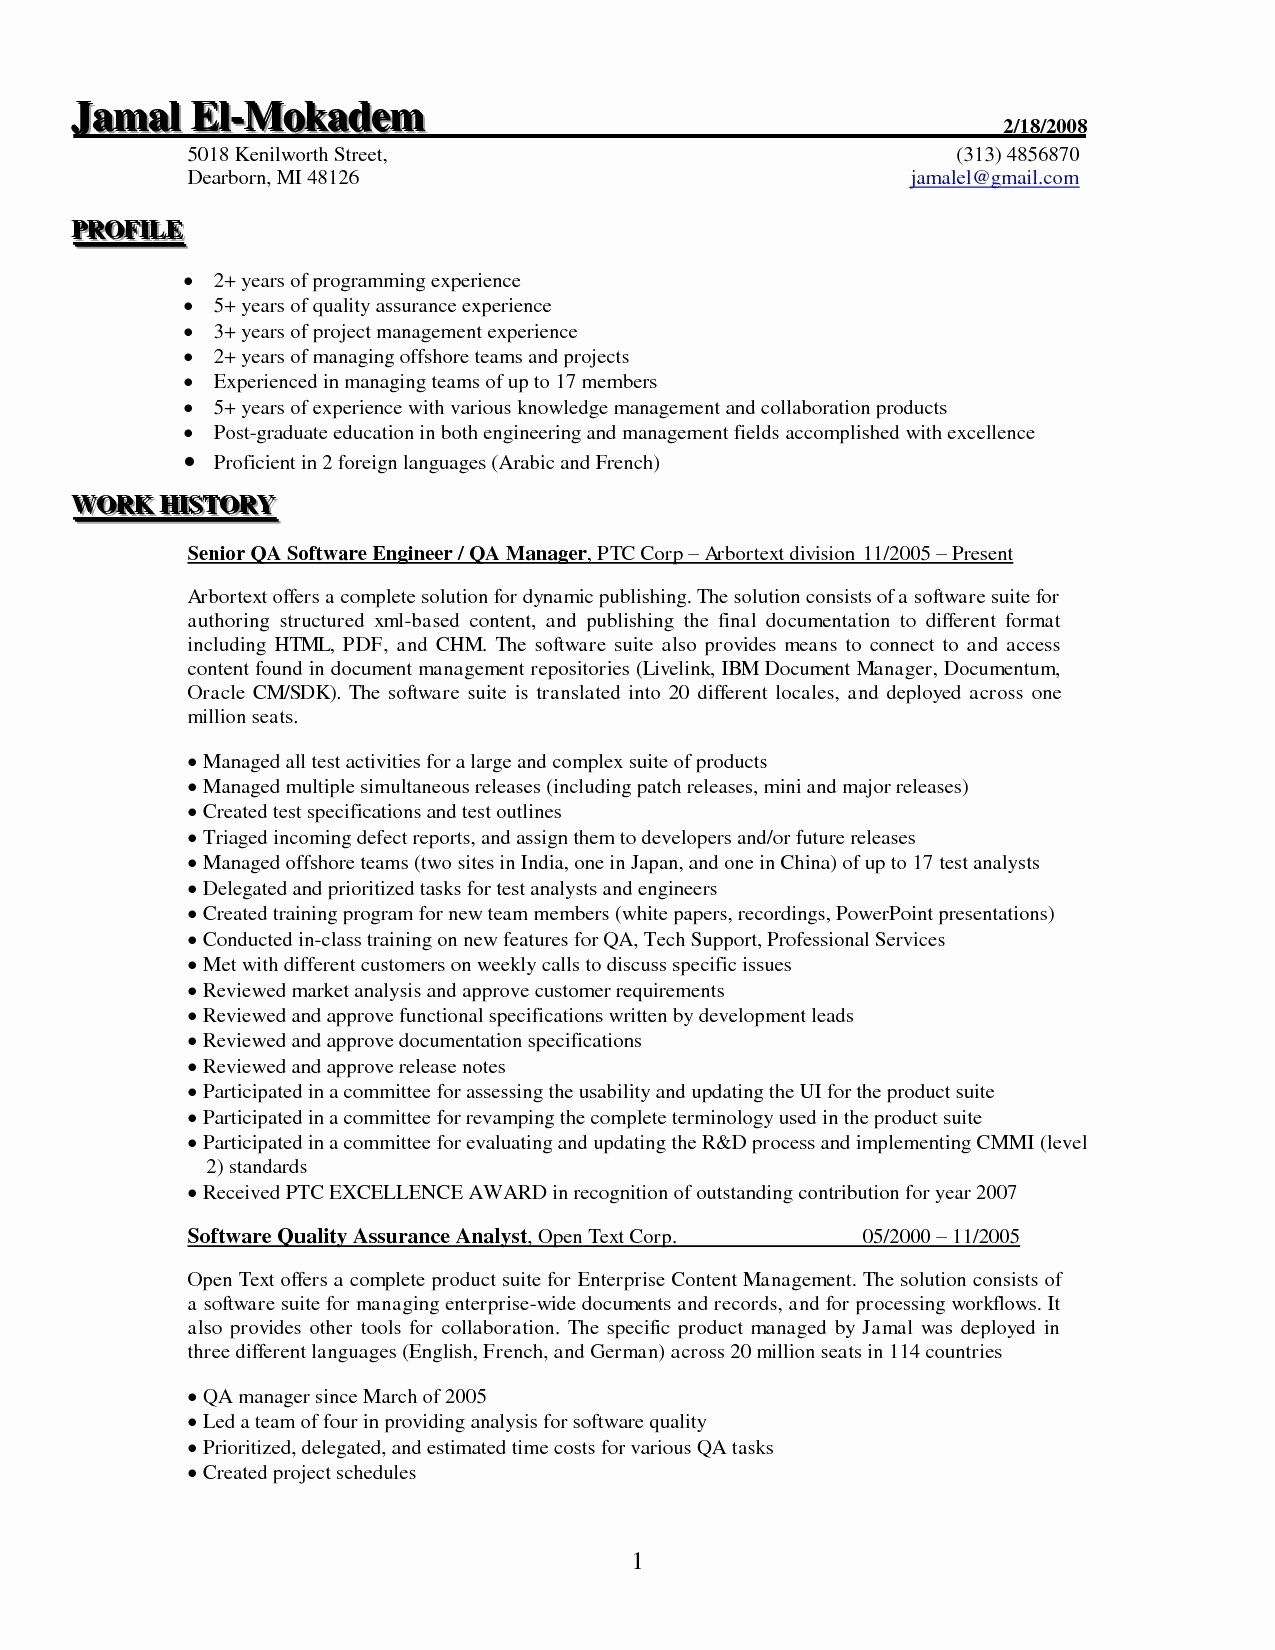 Resume Format For 5 Years Experience In Testing Resume Format